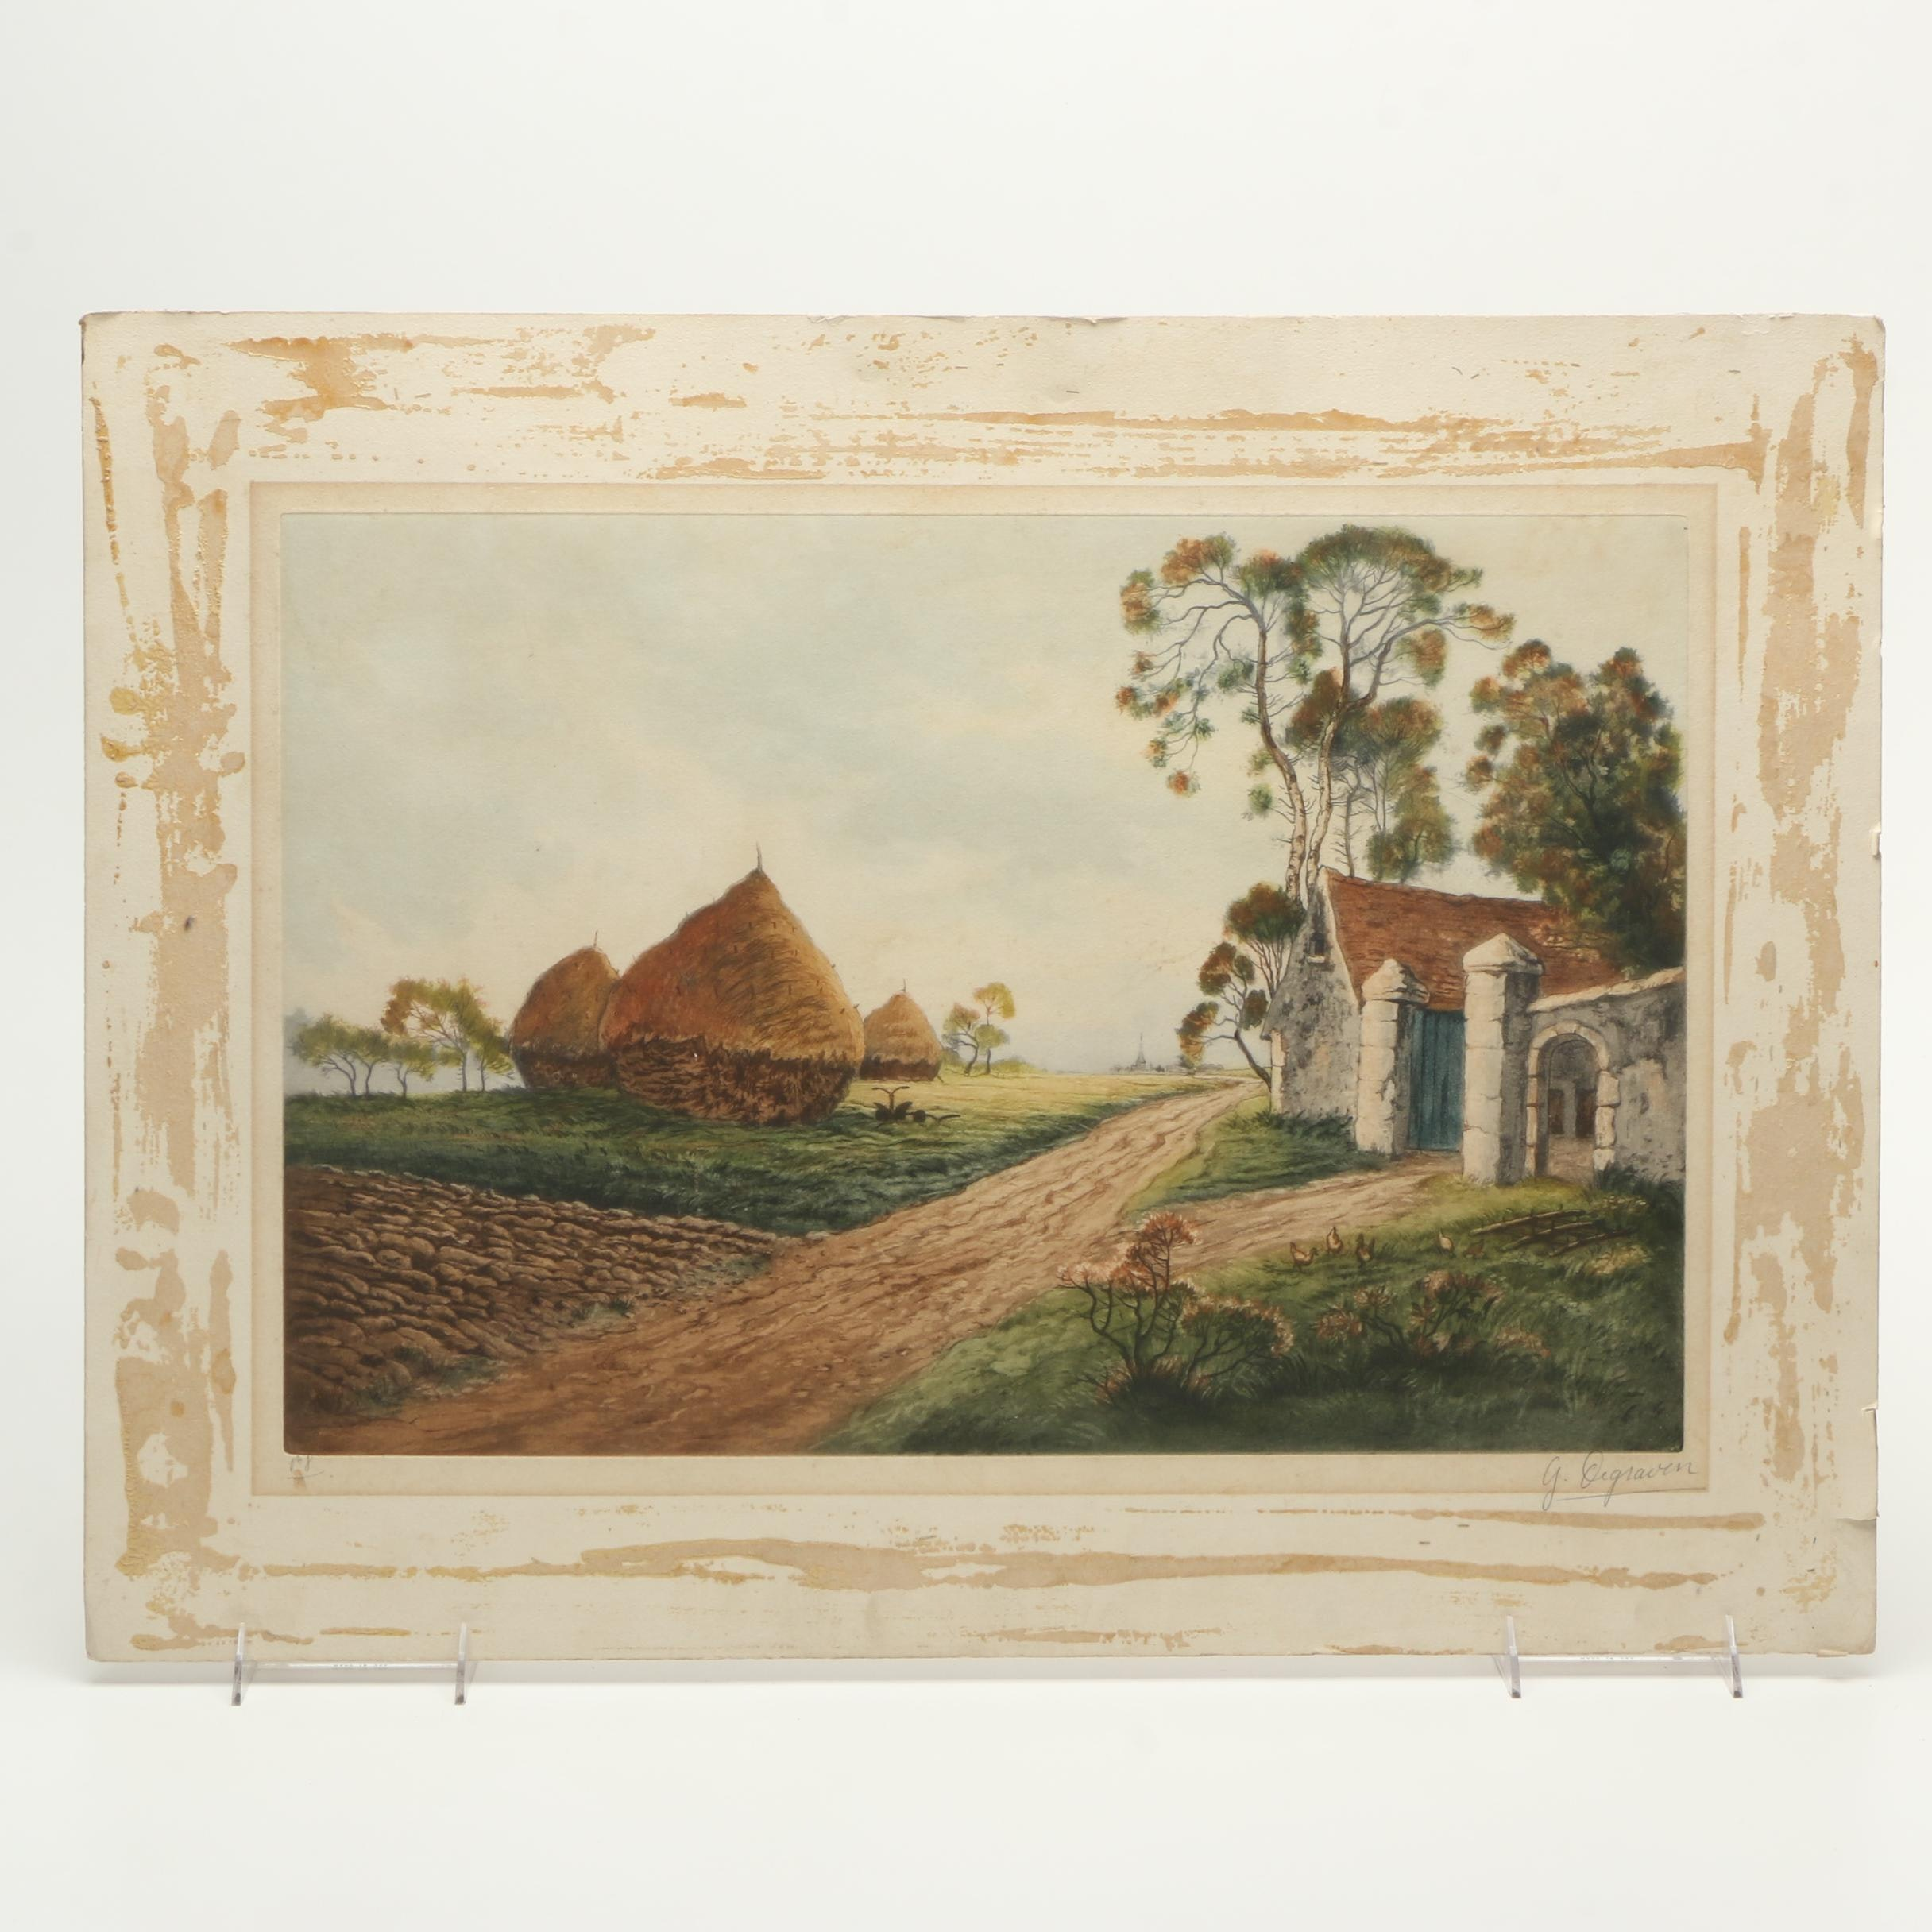 G. Degraven Etching with Aquatint of a Pastoral Landscape